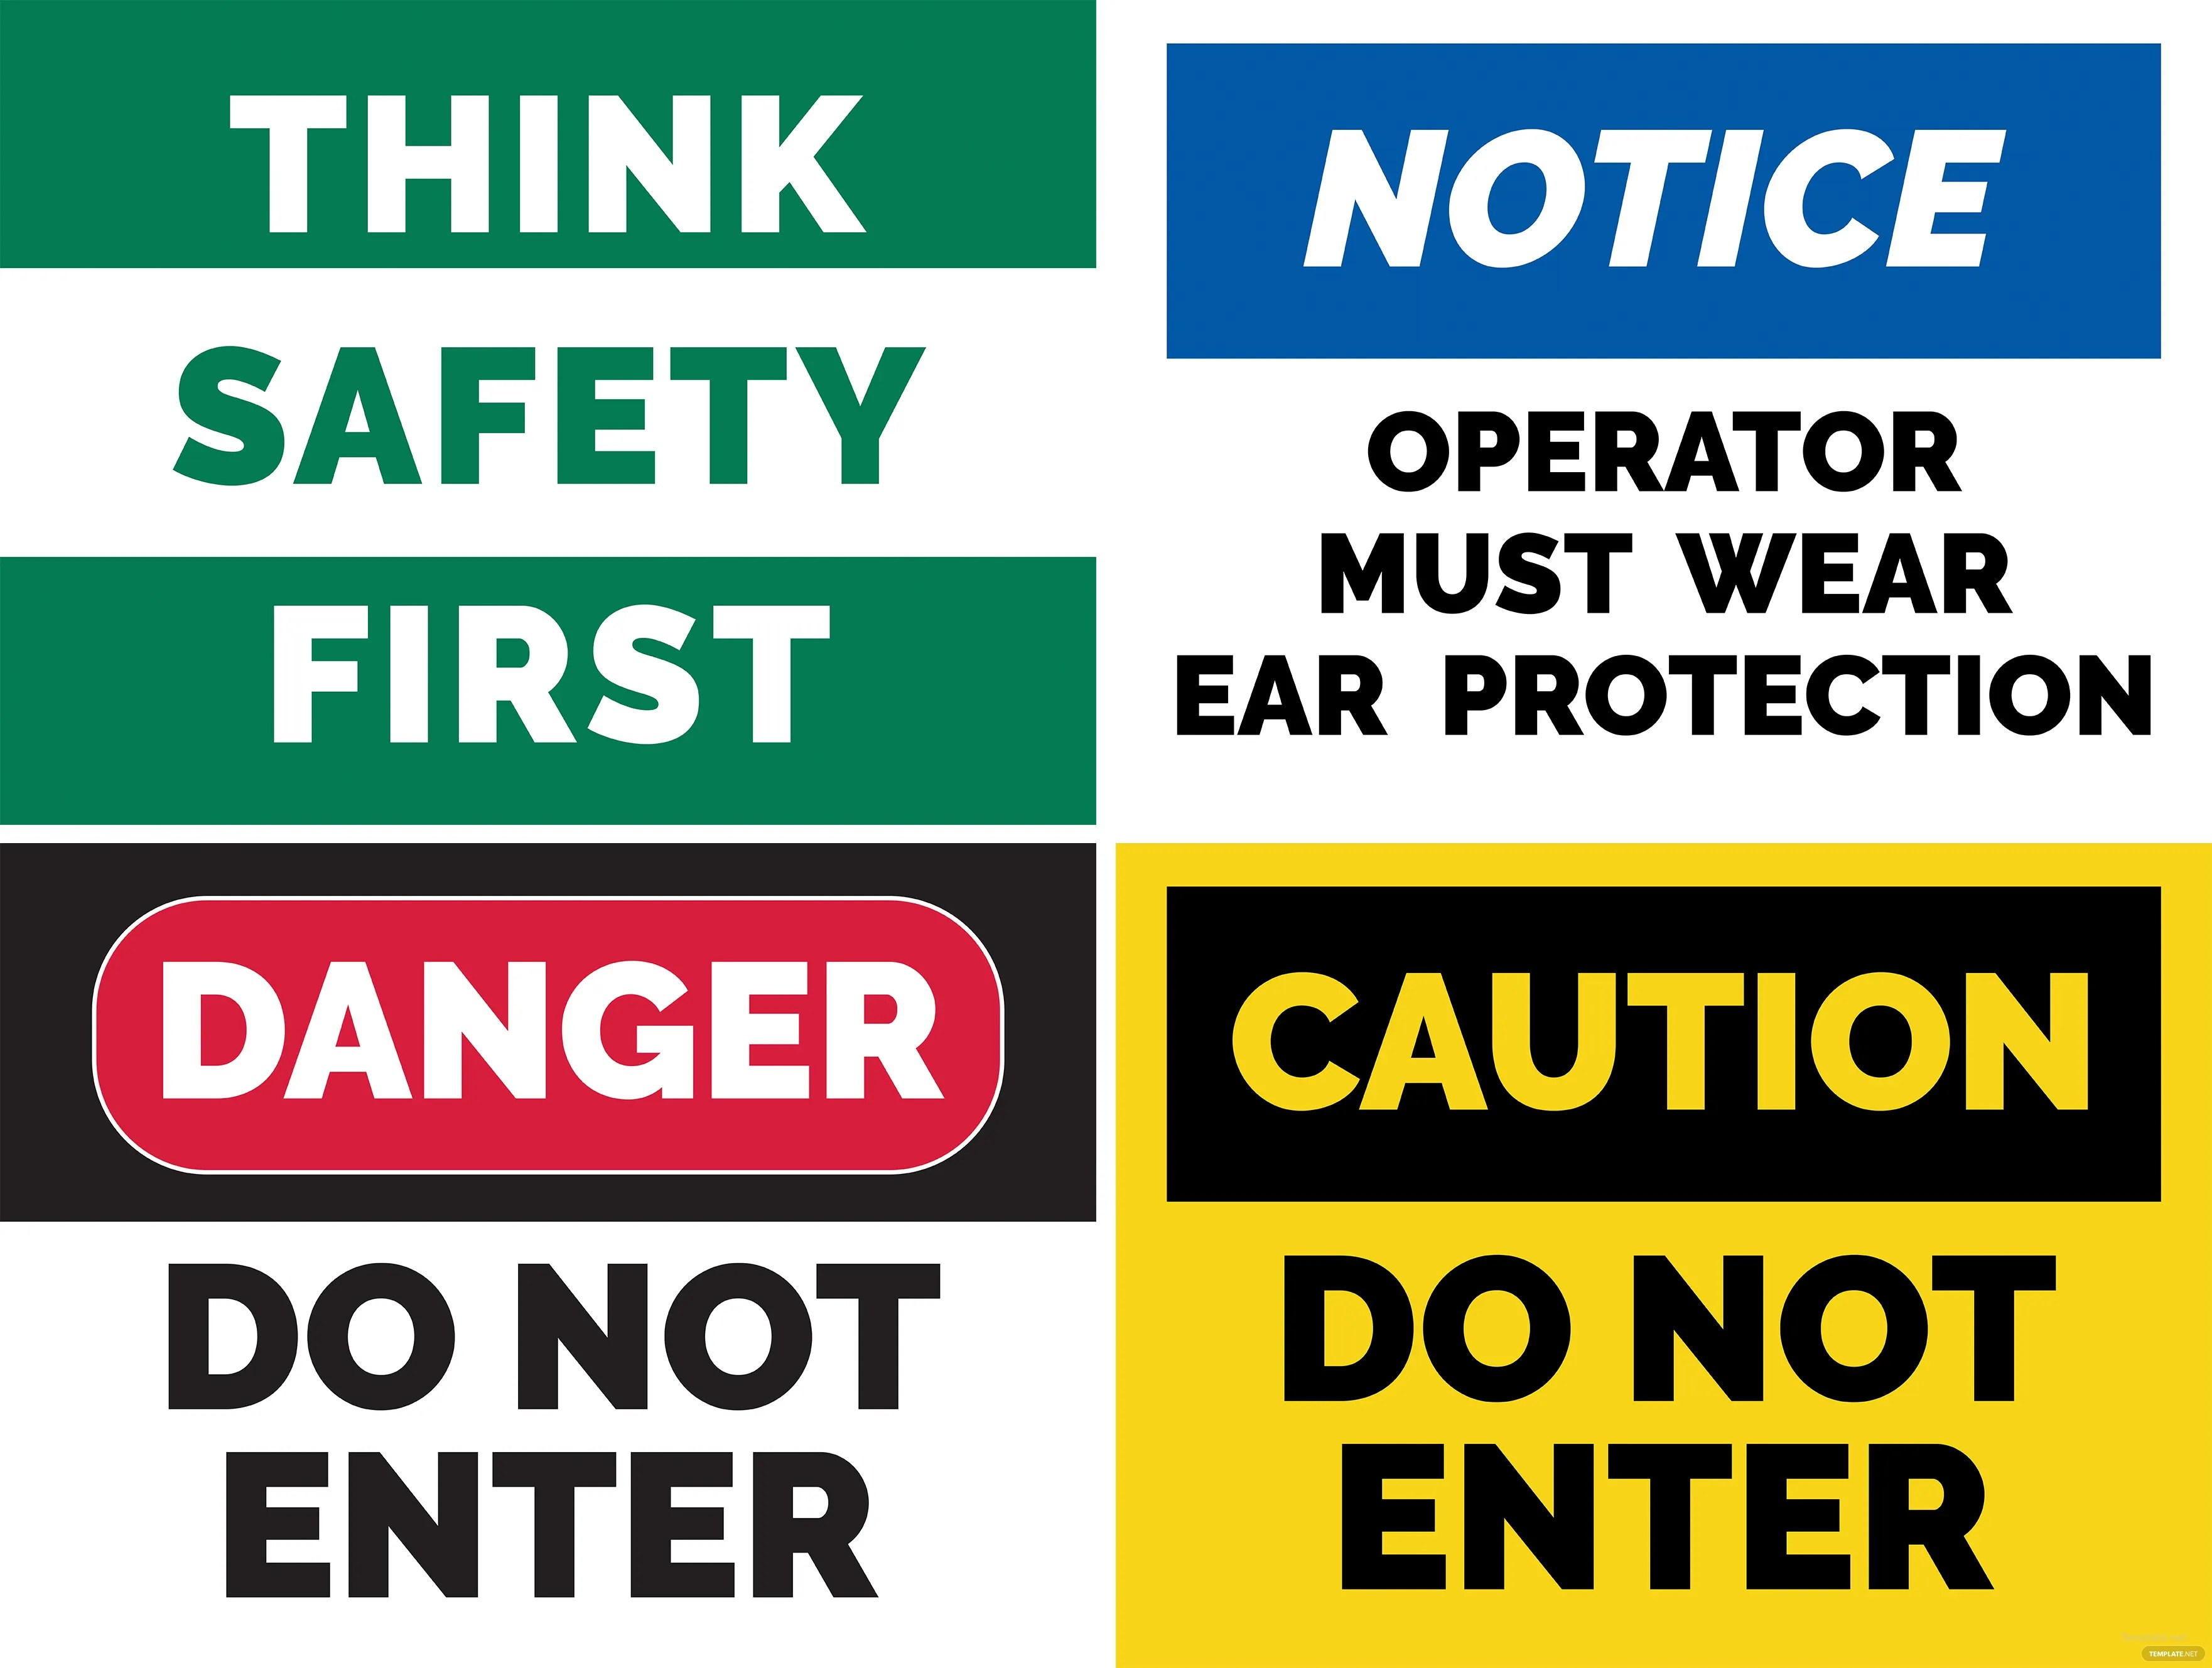 Free Safety Sign Template In Adobe Photoshop Illustrator